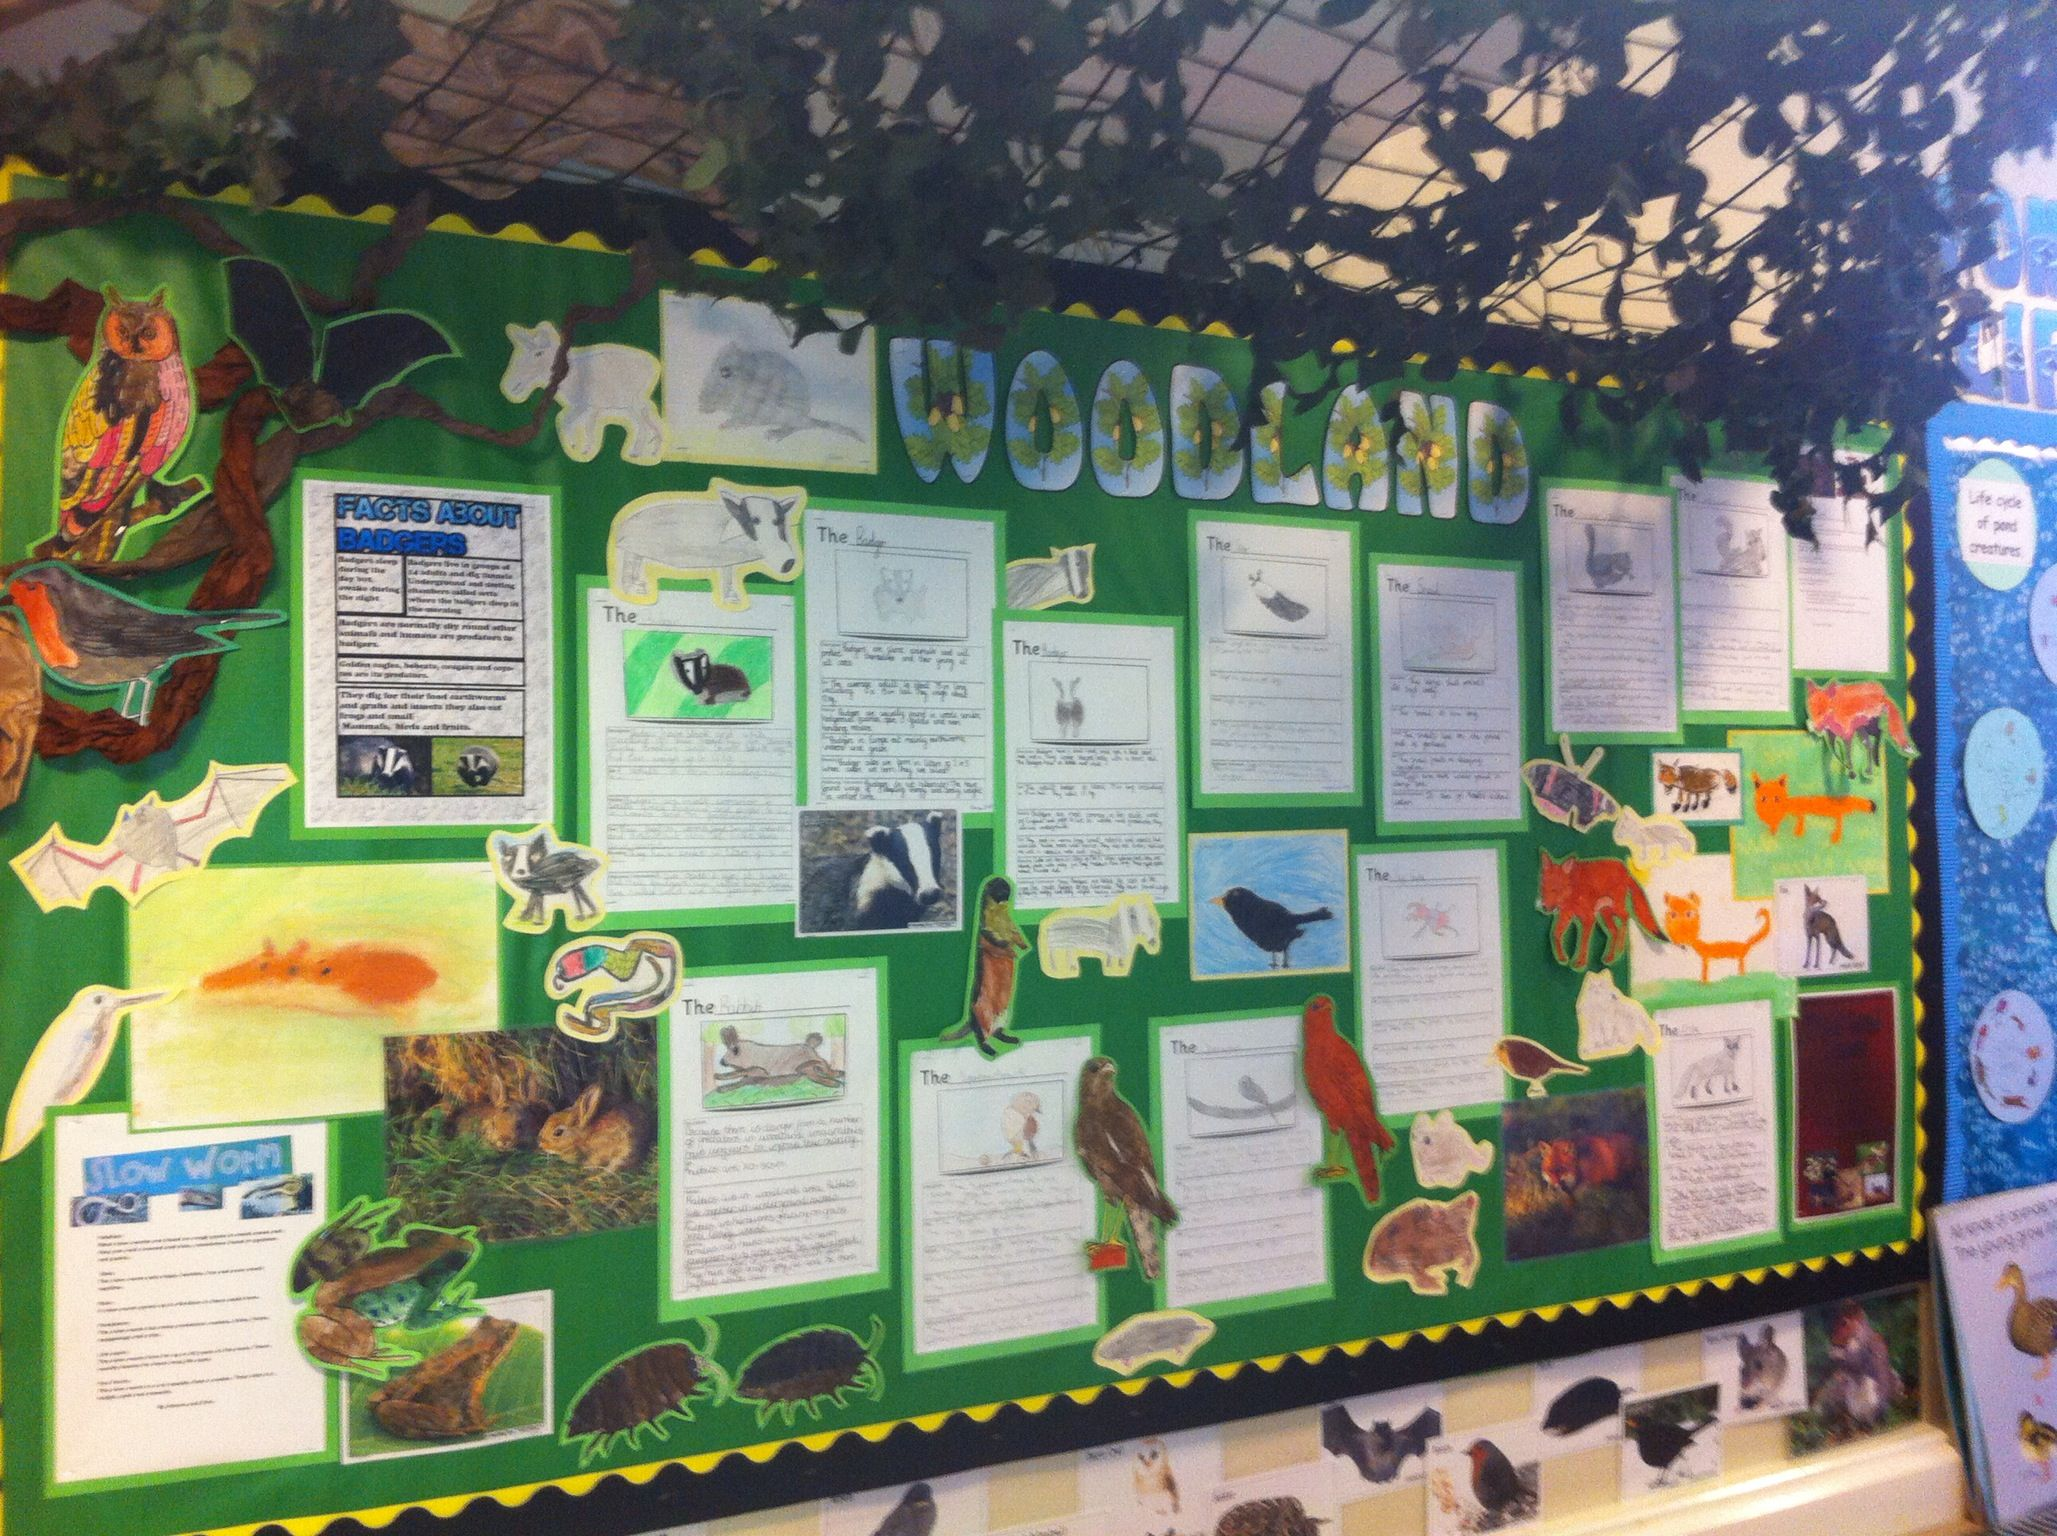 Woodland Ks2 Display